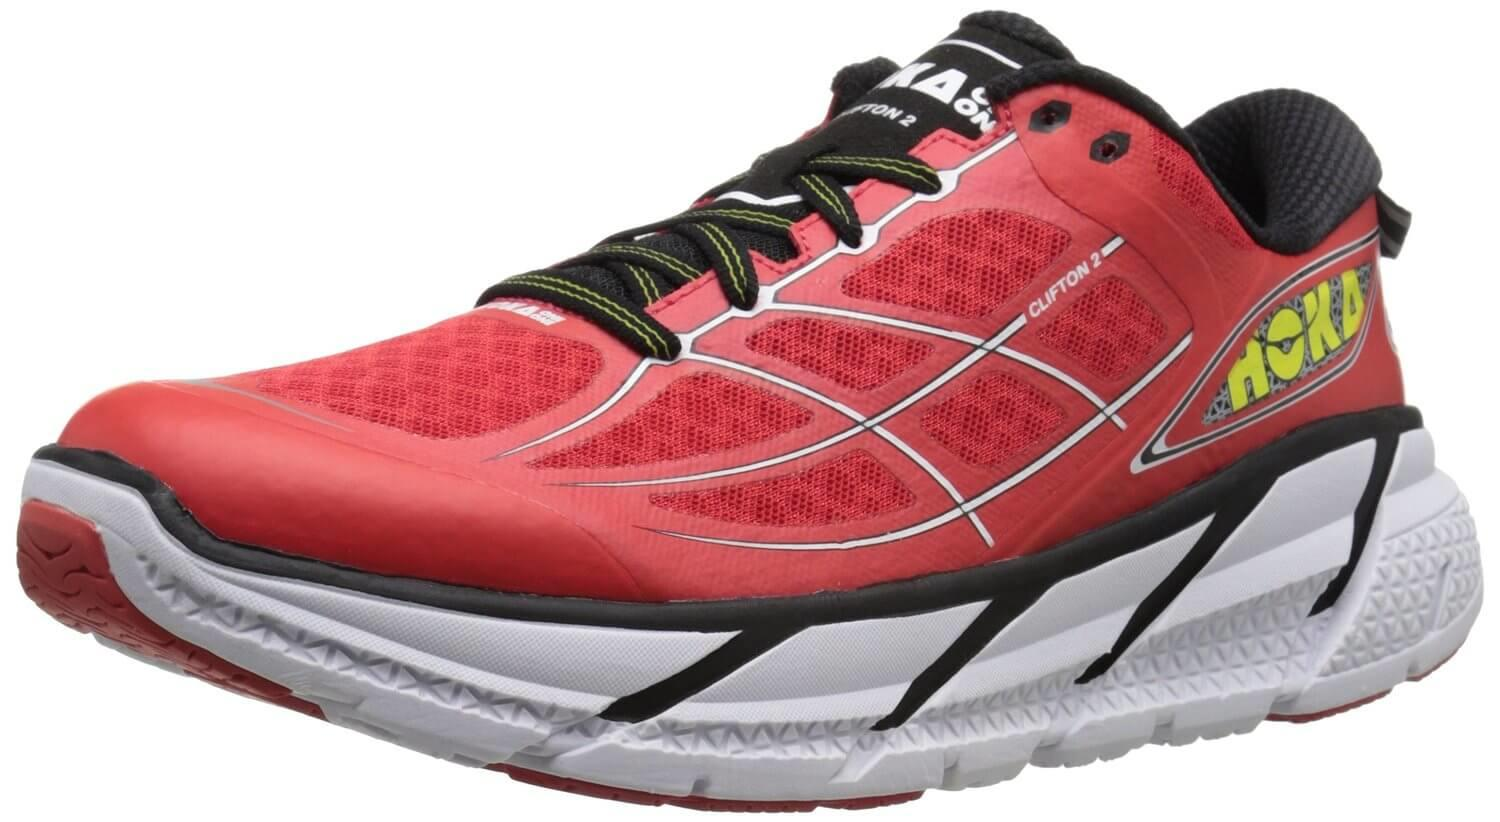 Hoka One One Clifton 2 Reviewed for Quality 1